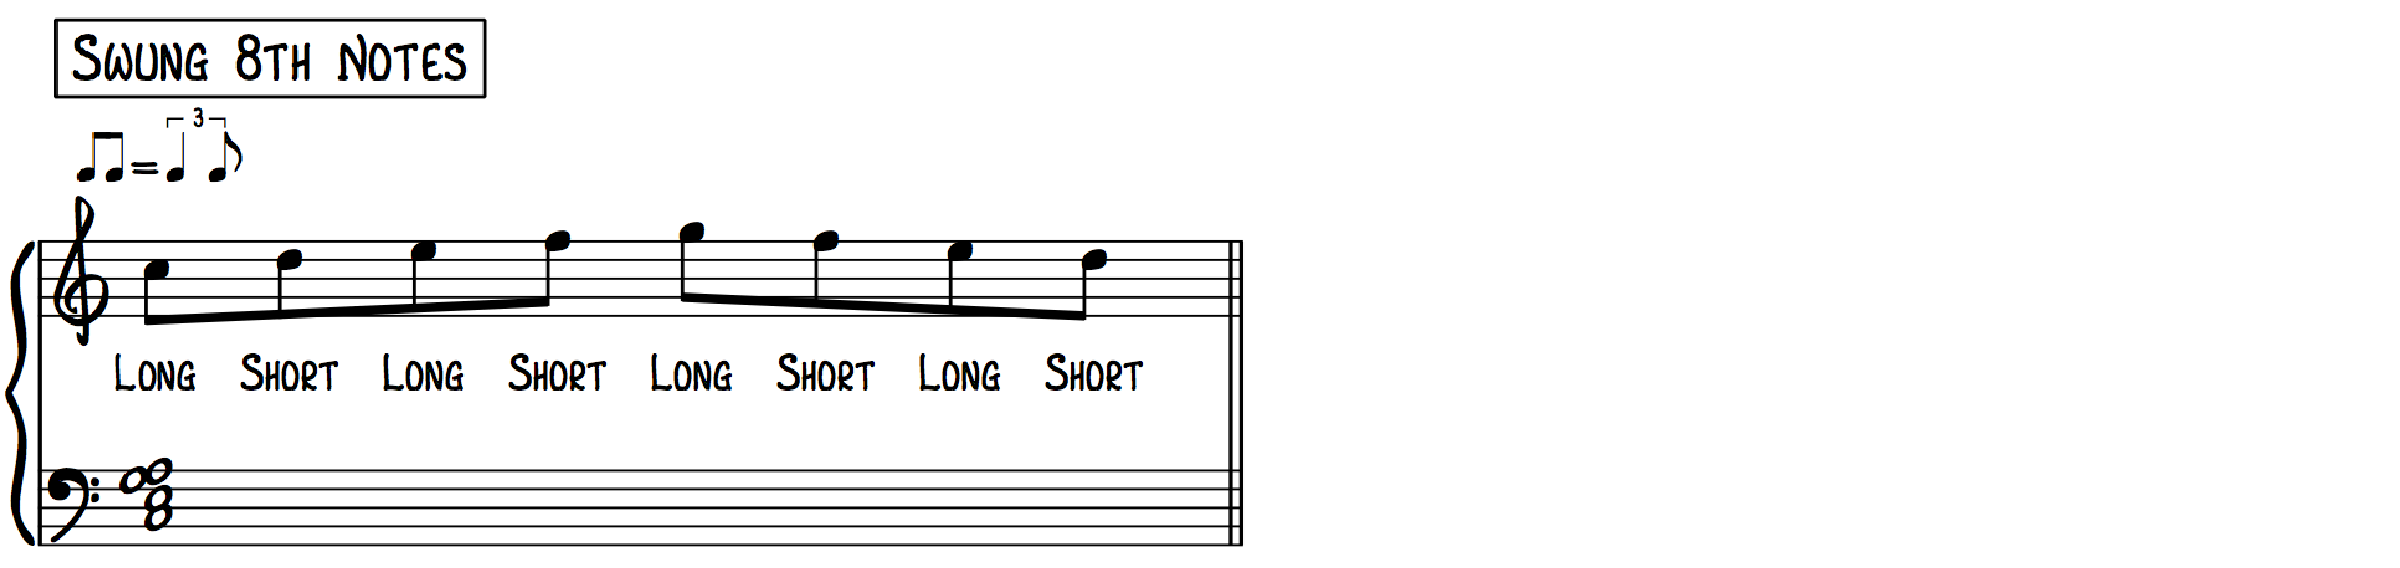 Swung 8th notes Jazz Swing Feel Eighth Notes Shuffle Uneven